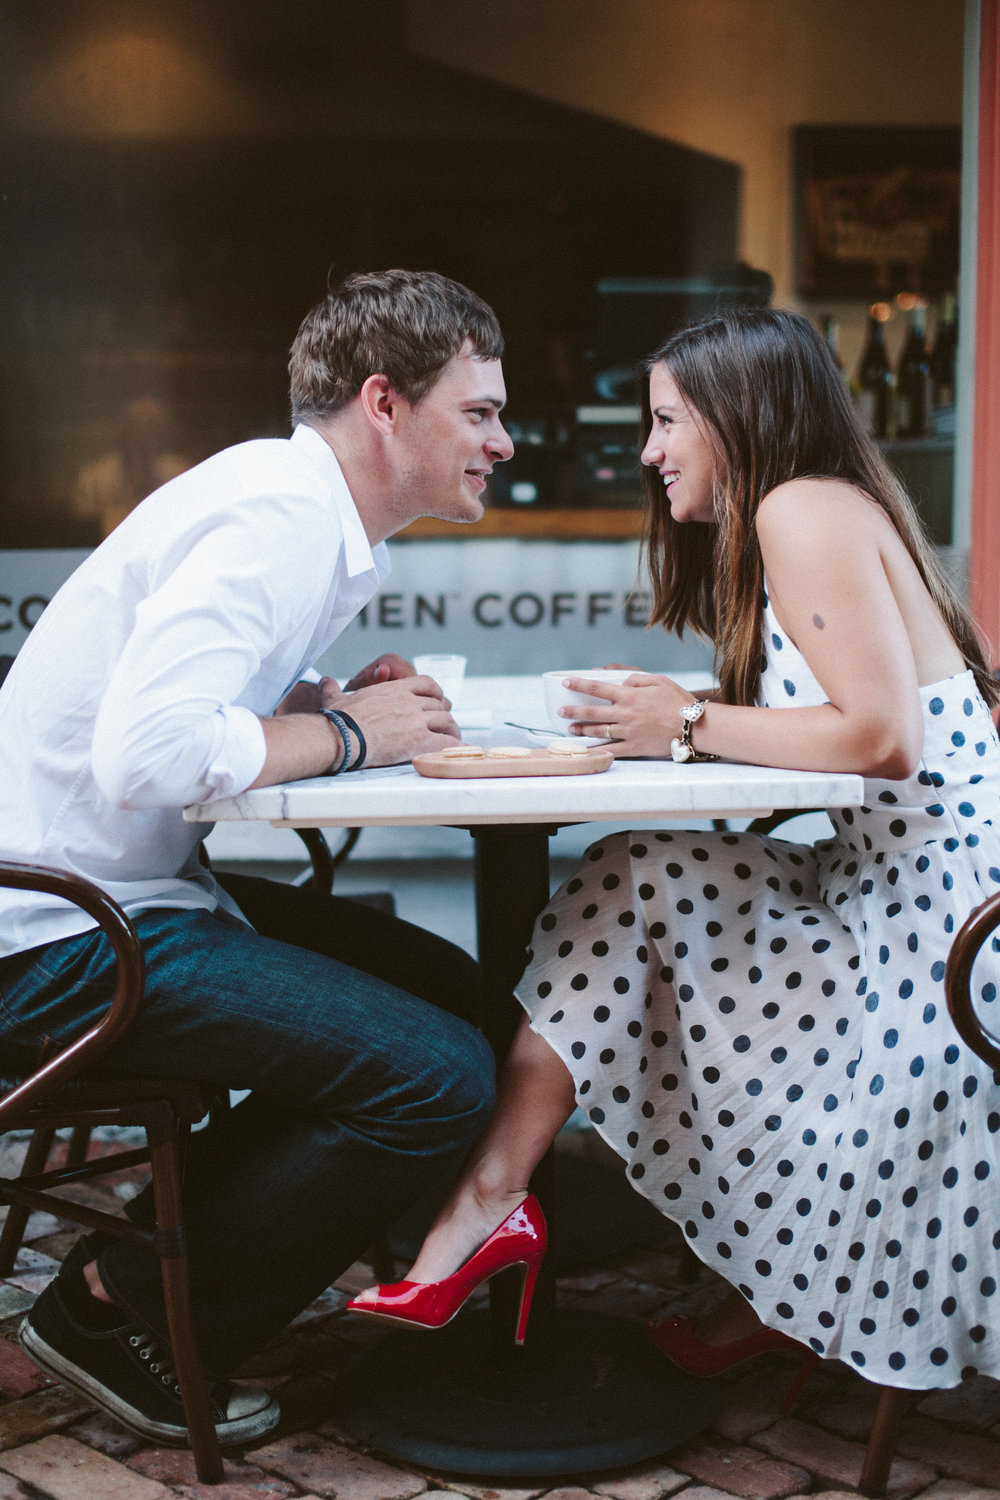 1. my love story - I first met Timothy at an event the nonprofit I worked for at the time was hosting. He was a veteran volunteer, but a couple months after the first time I met him he ended up coming to work at the nonprofit too. We quickly realized there was something there and he took me on our first coffee date. We sat at a table outside of the coffee shop long past closing, until 2 in the morning, talking about EVERYTHING! I texted my best friend when I got home that night saying